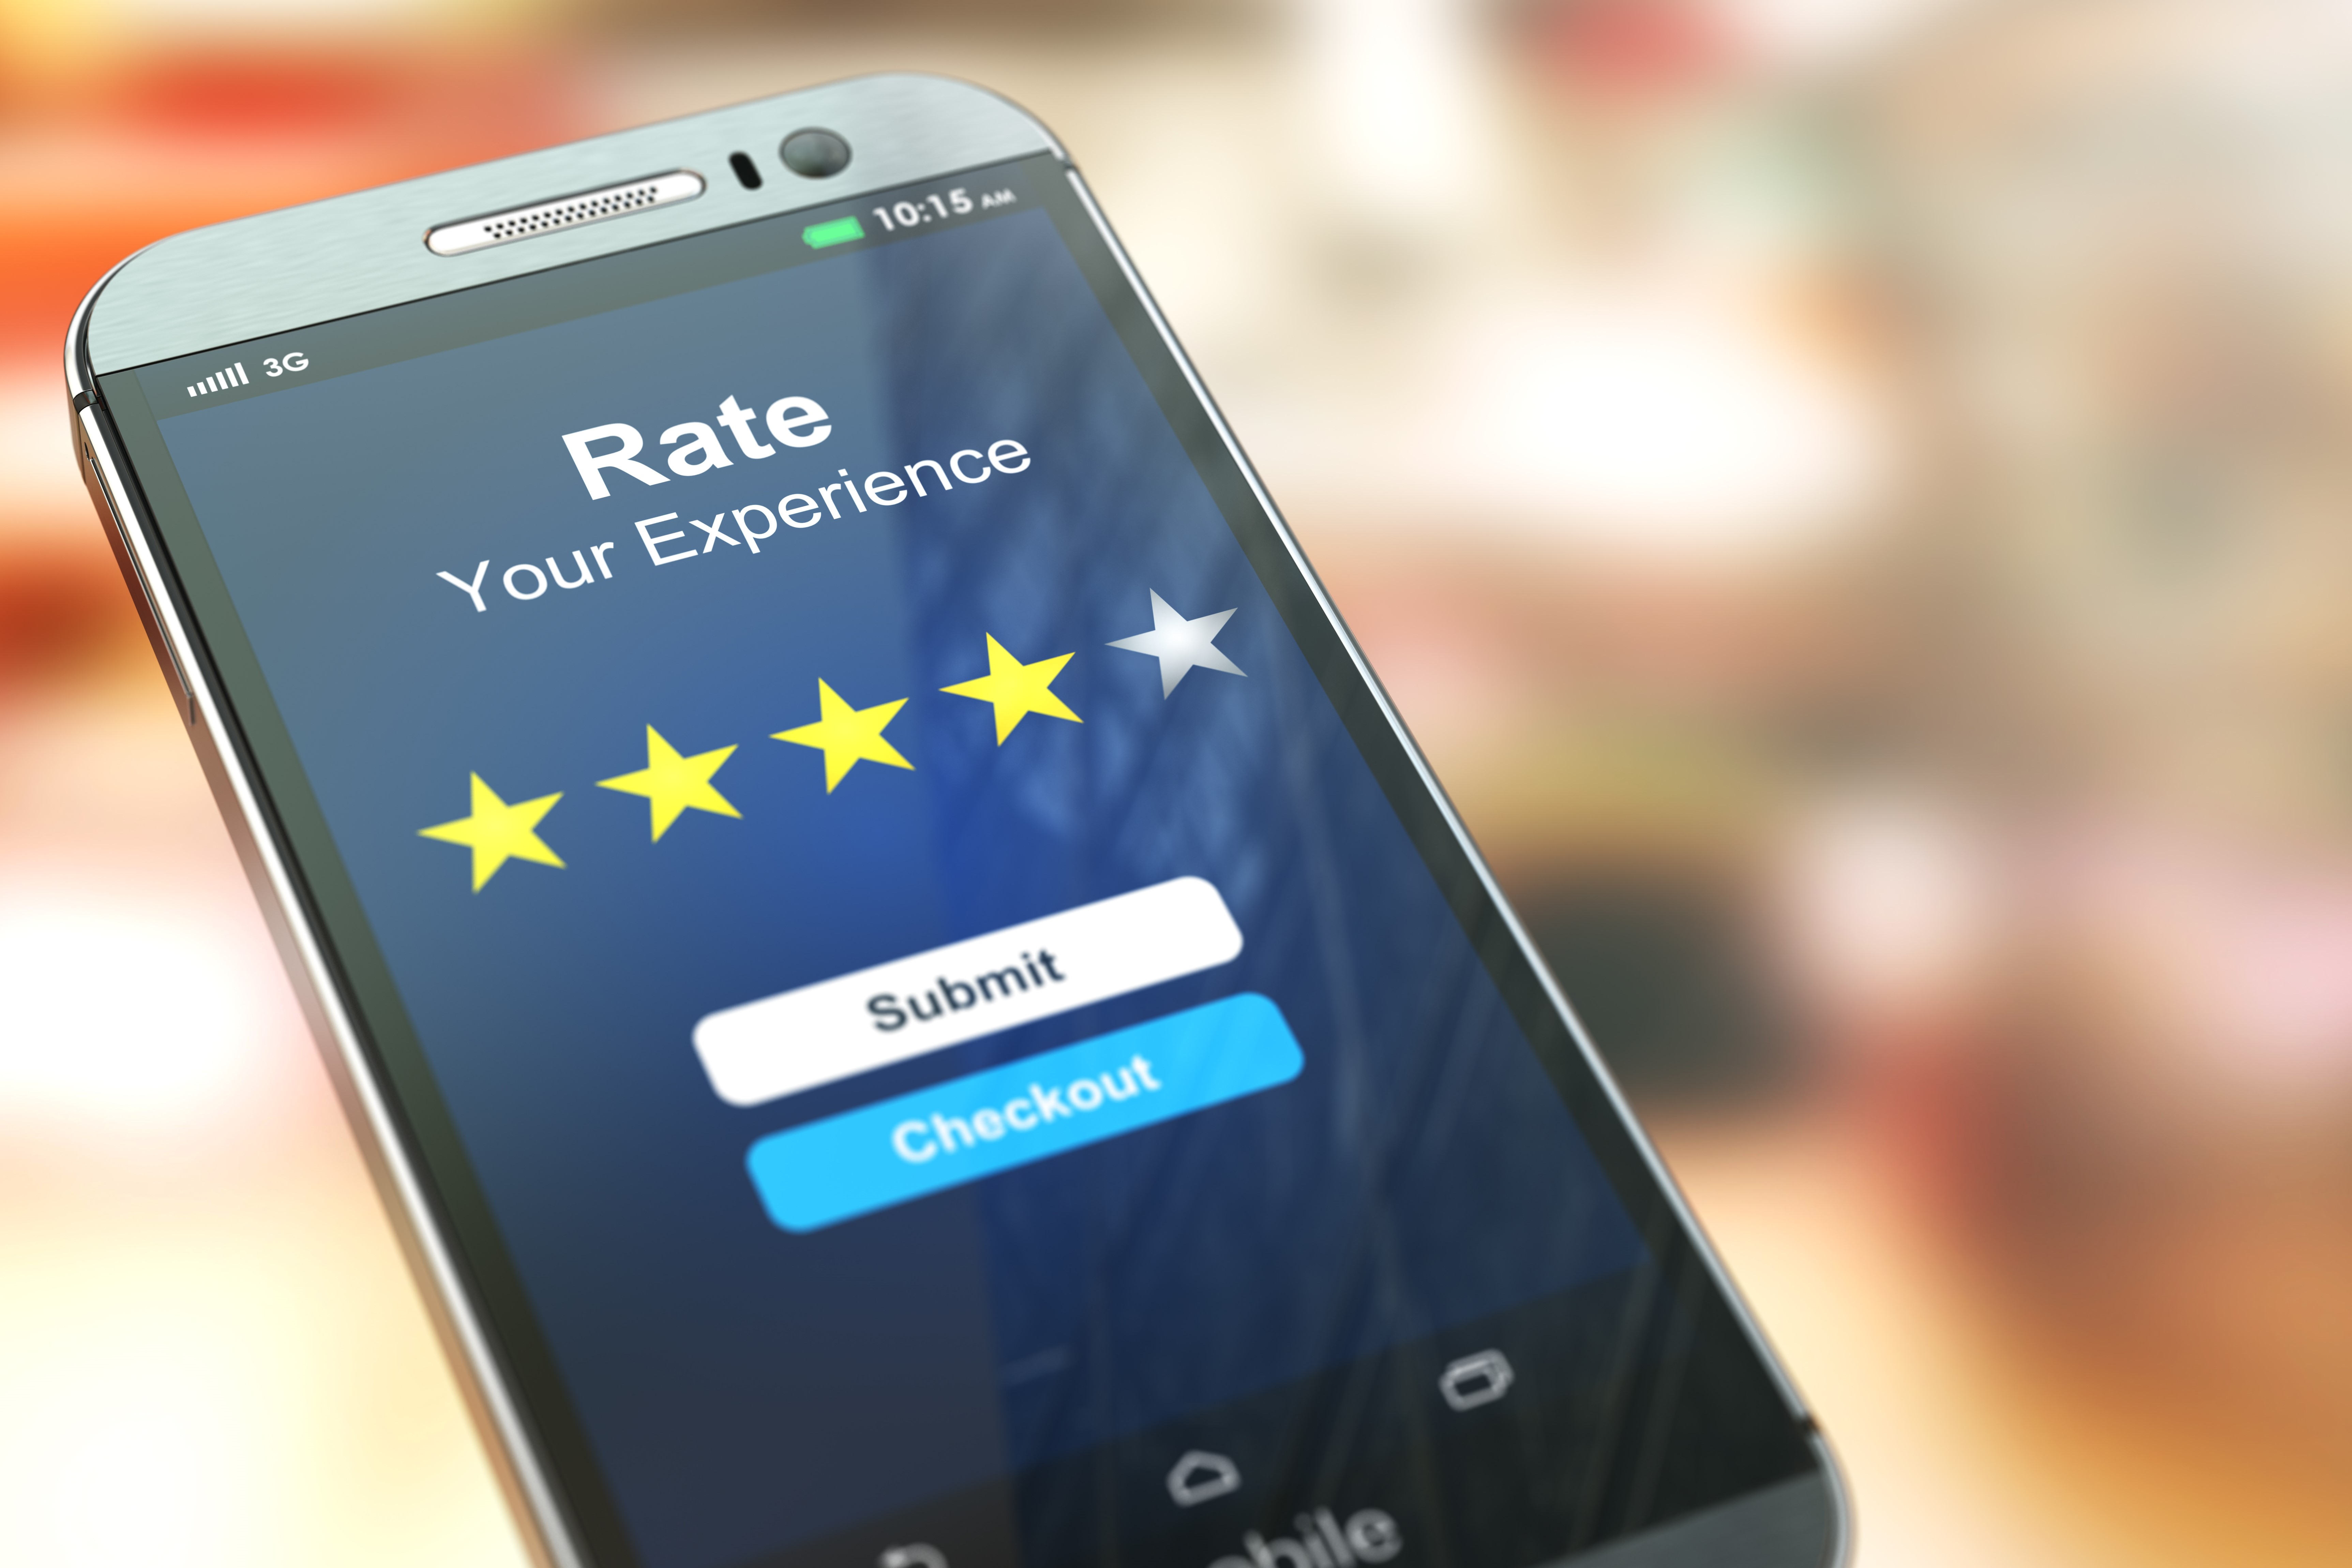 Restaurants – Don't Turn the Other Cheek to Bad Online Reviews